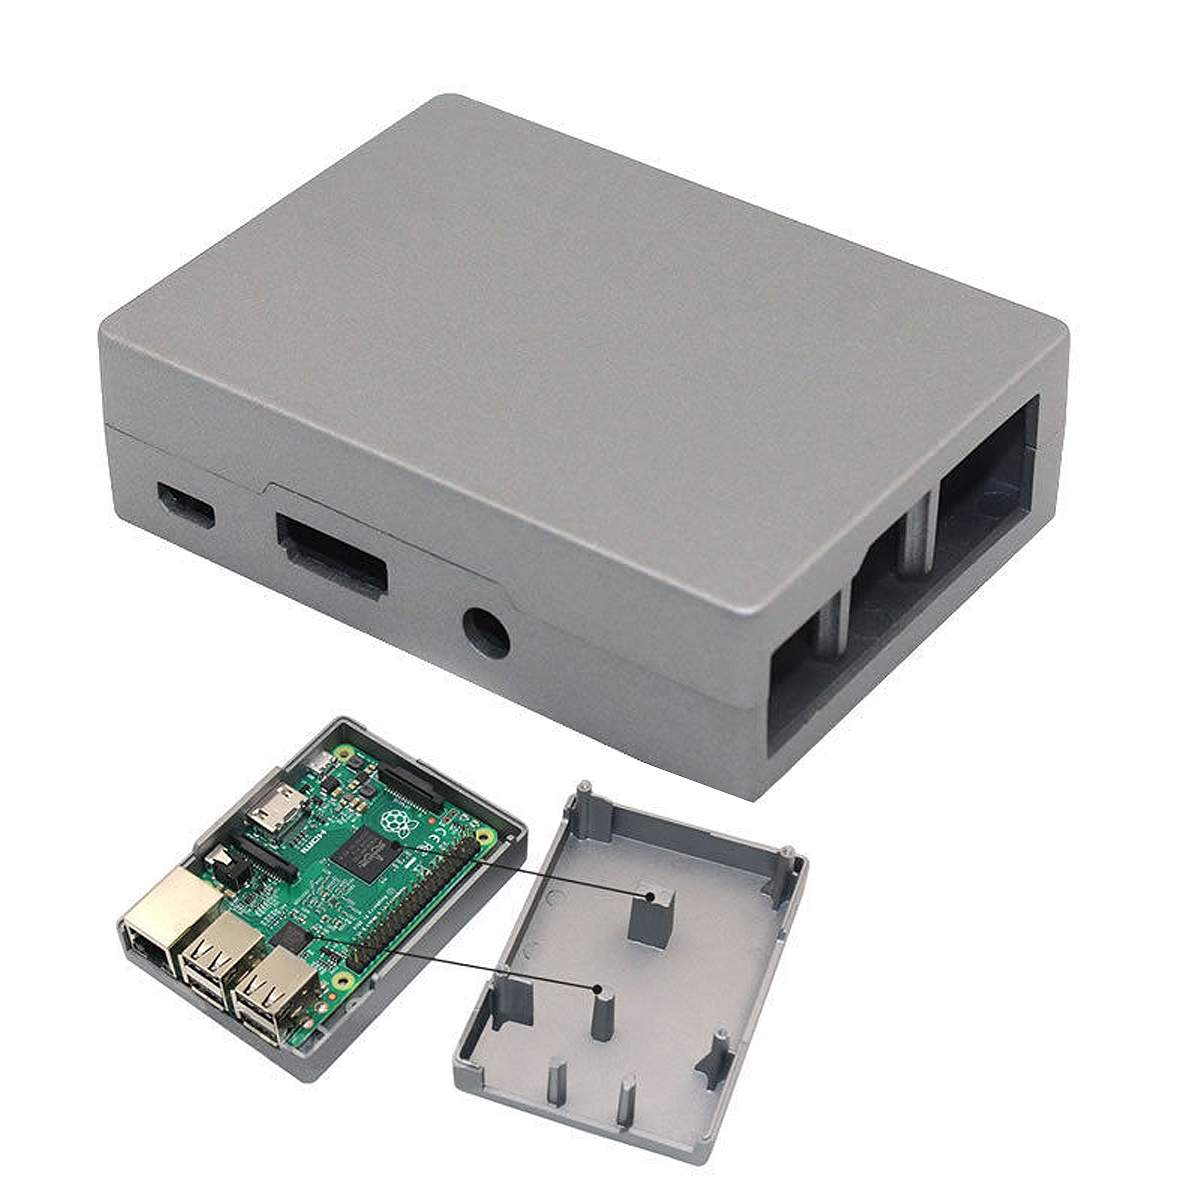 Durable Aluminum Alloy Enclosure Metal Case Box For Pi B+/B/Pi 2/Pi 3 No Need HeatSink Fan Necessary Port Interface For External